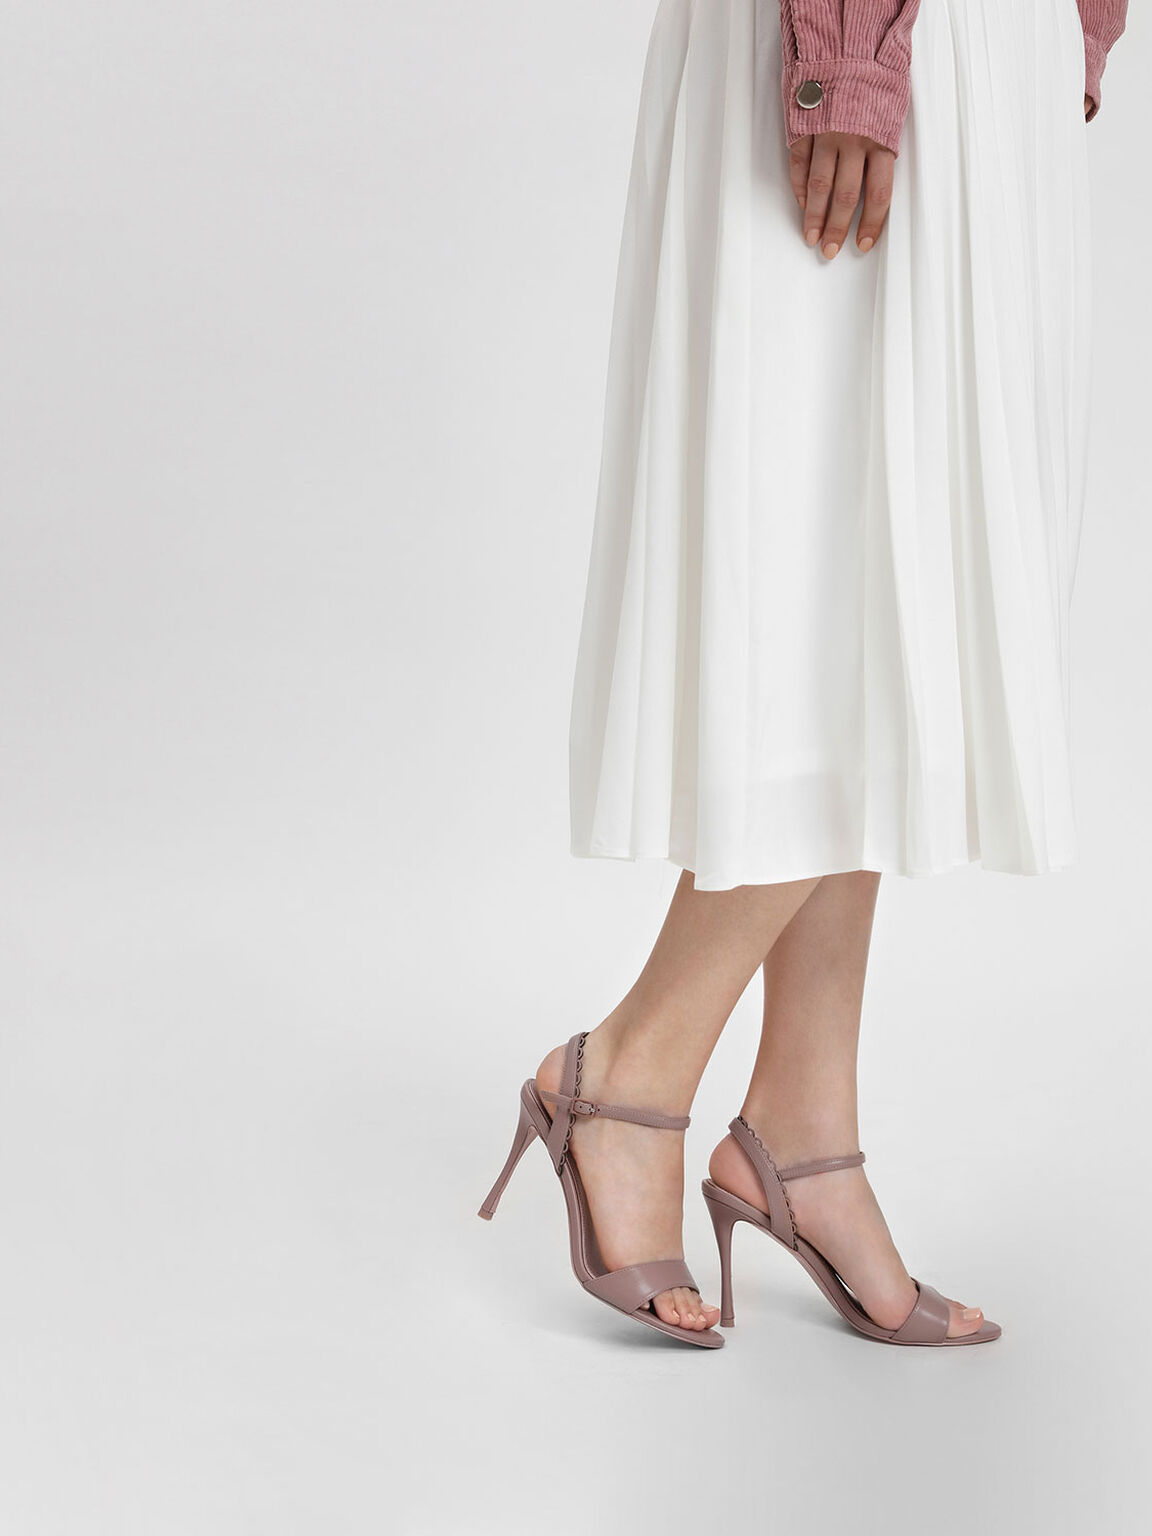 Scallop Edge Detail Heeled Sandals, Nude, hi-res